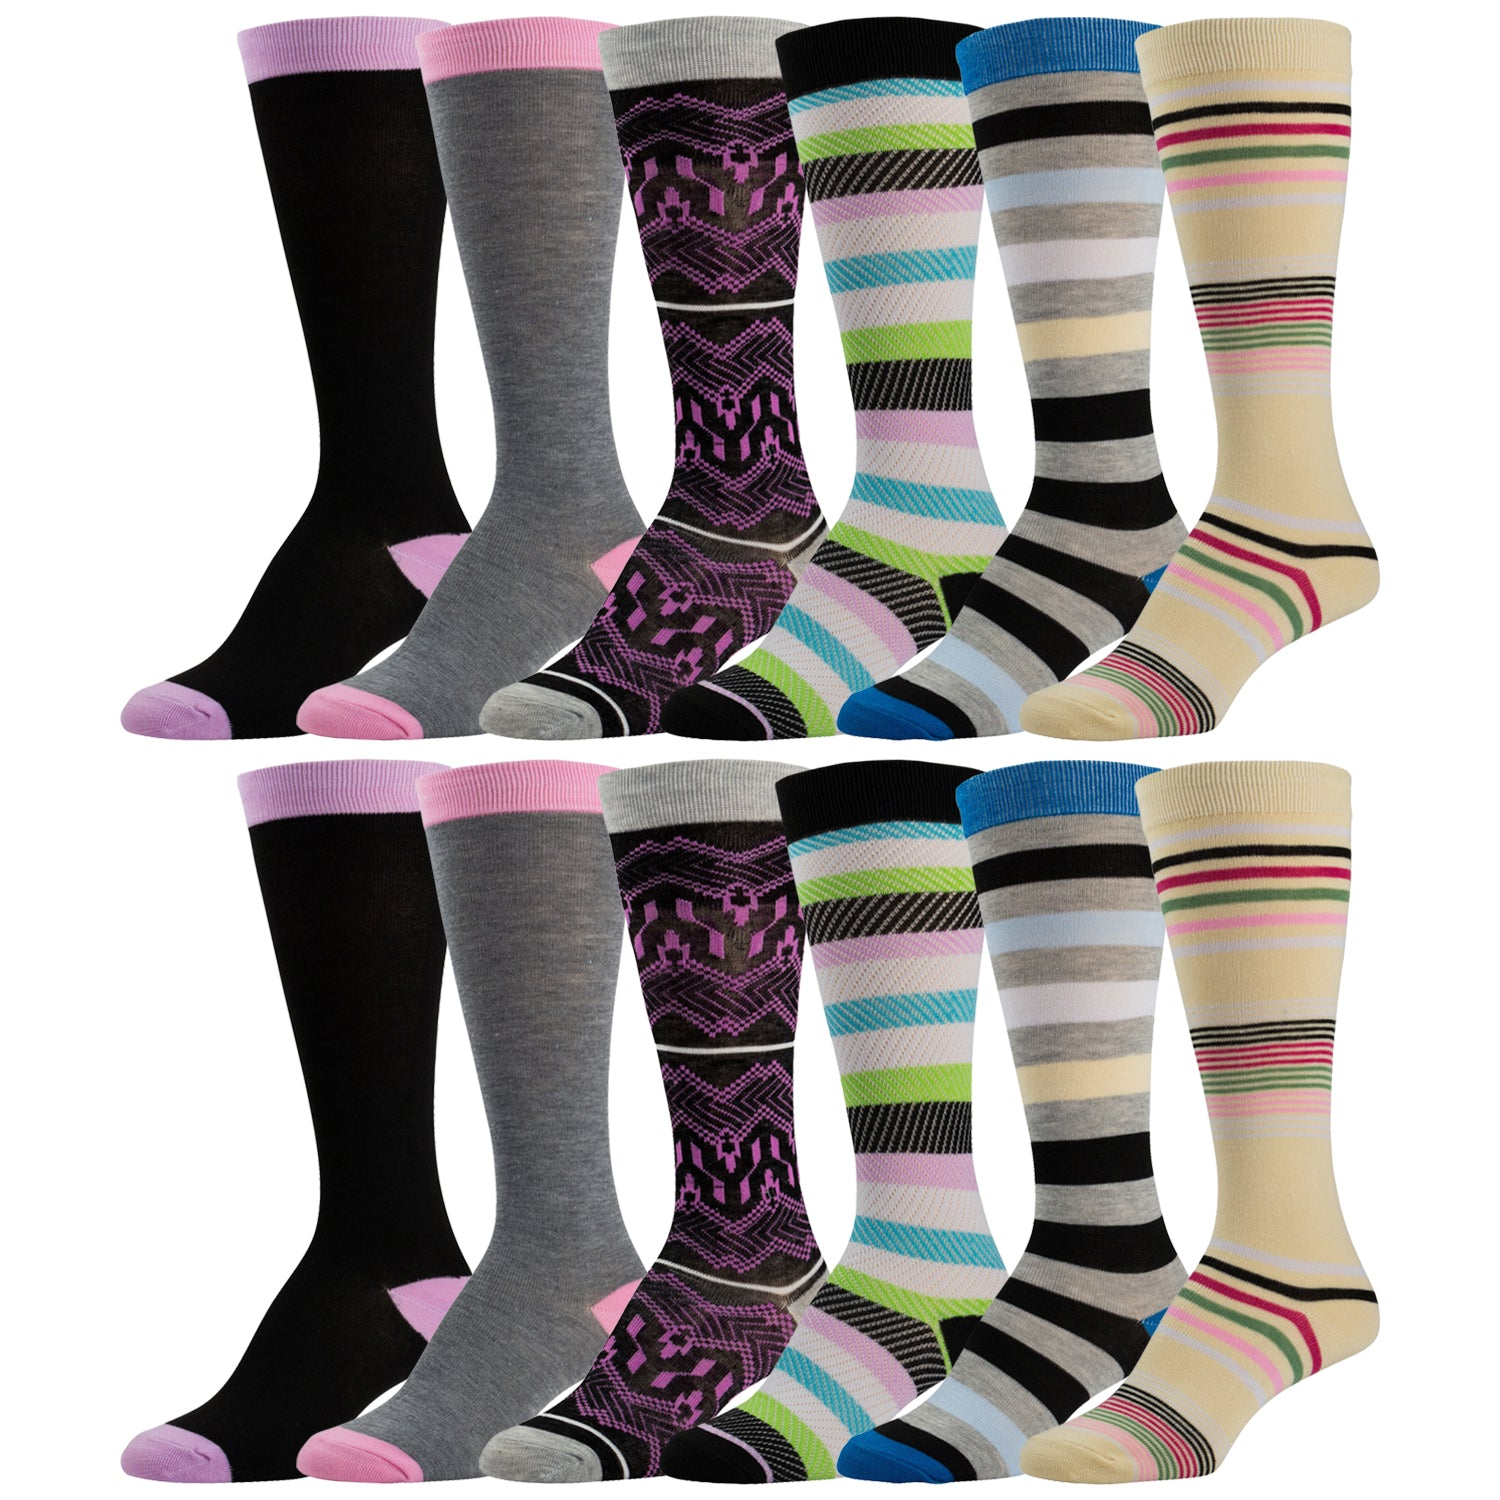 12 Pairs of Colorful Knee High Socks Solids and Patterned